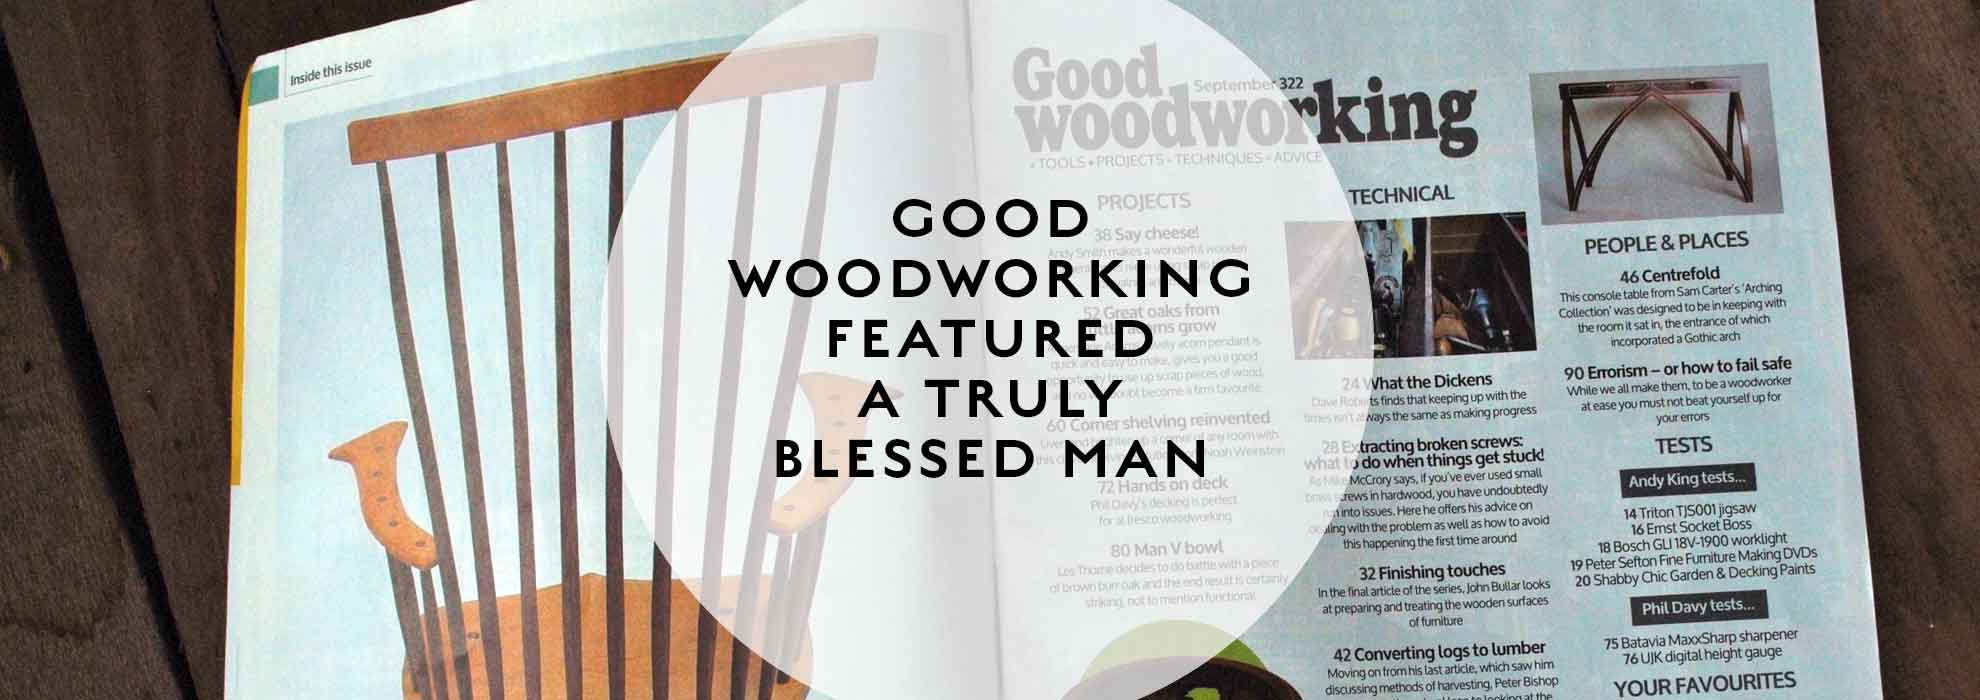 Good Woodworking Features Blesses Man